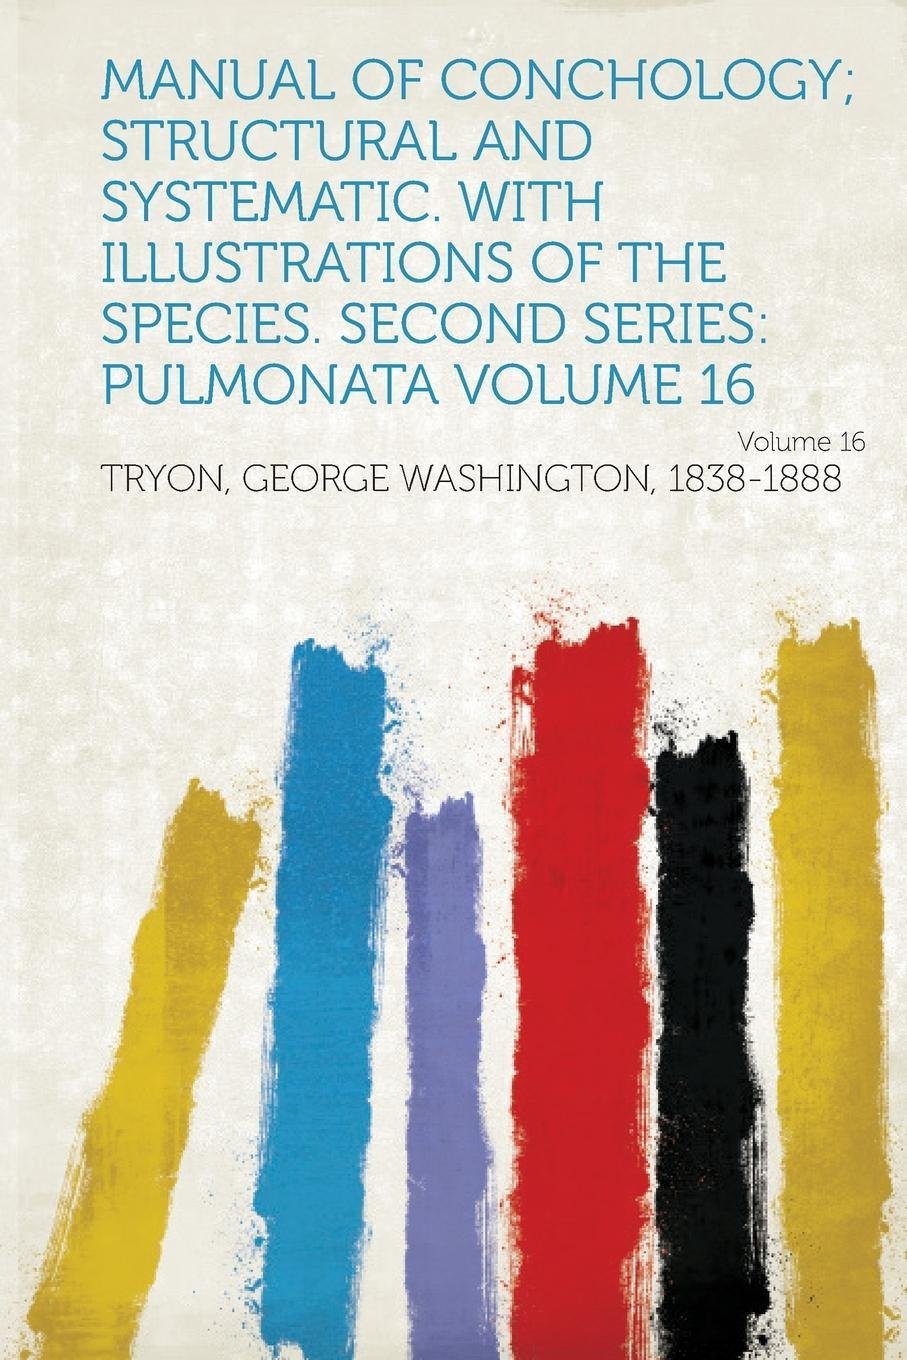 Download Manual of Conchology; Structural and Systematic. with Illustrations of the Species. Second Series: Pulmonata Volume 16 PDF Text fb2 book